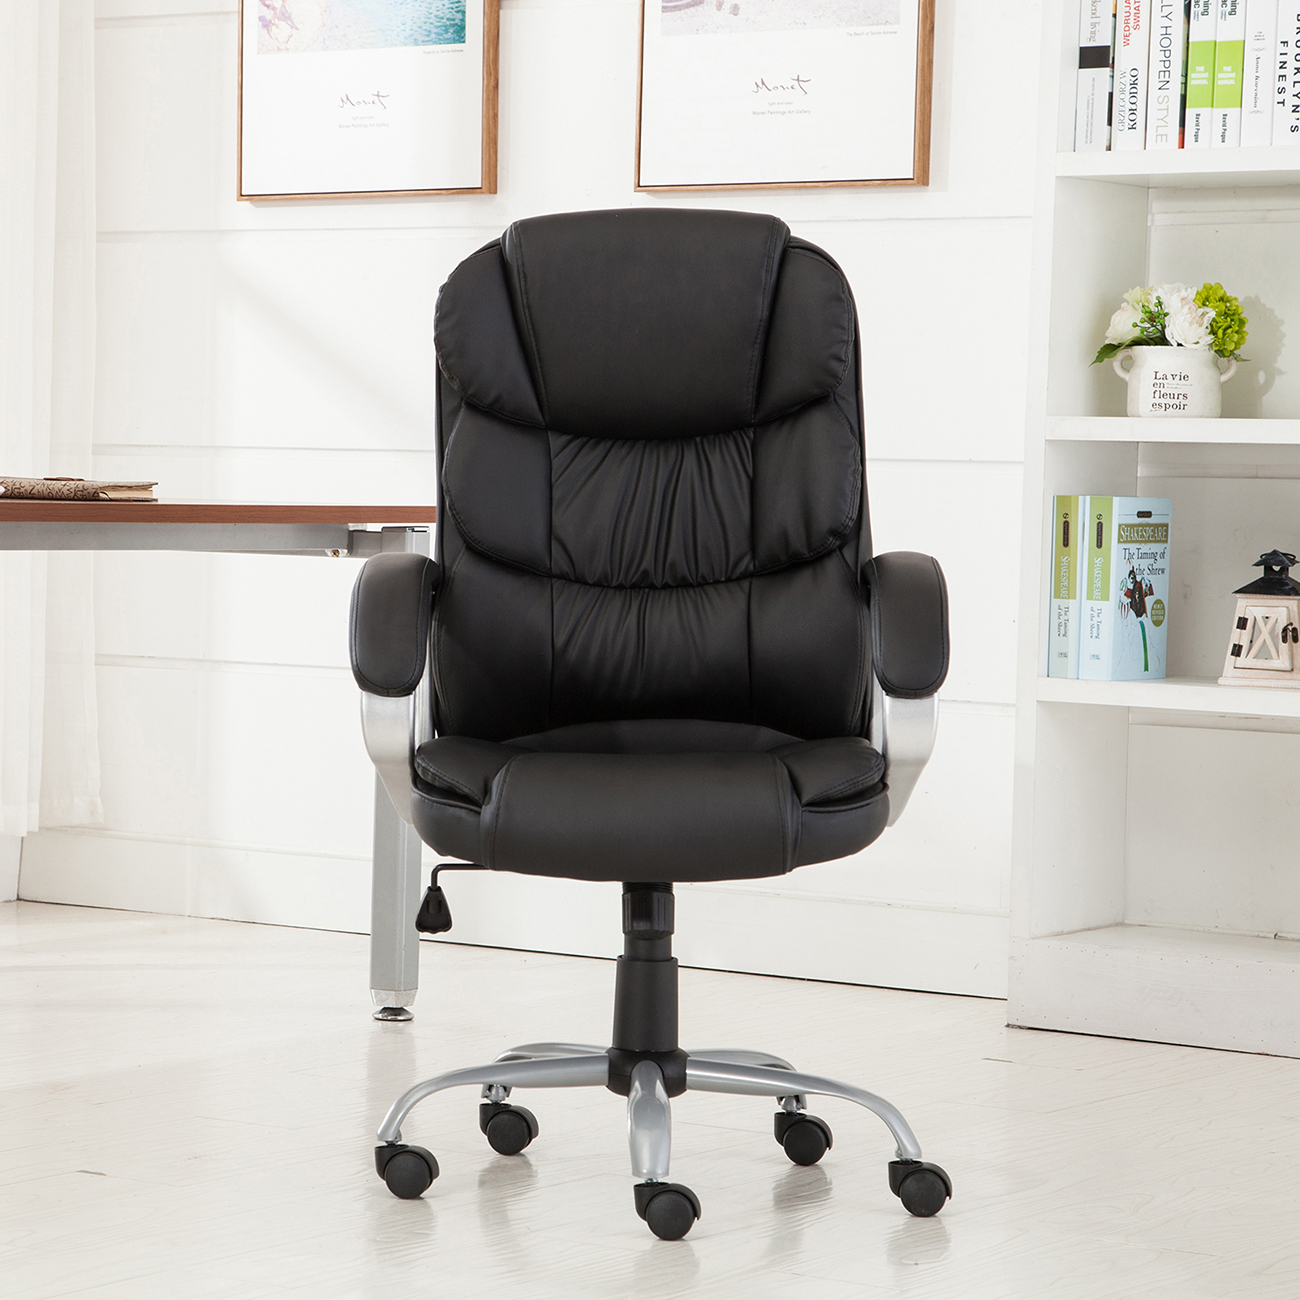 pu leather office rolling computer chair black mocha high back executive desk ebay. Black Bedroom Furniture Sets. Home Design Ideas